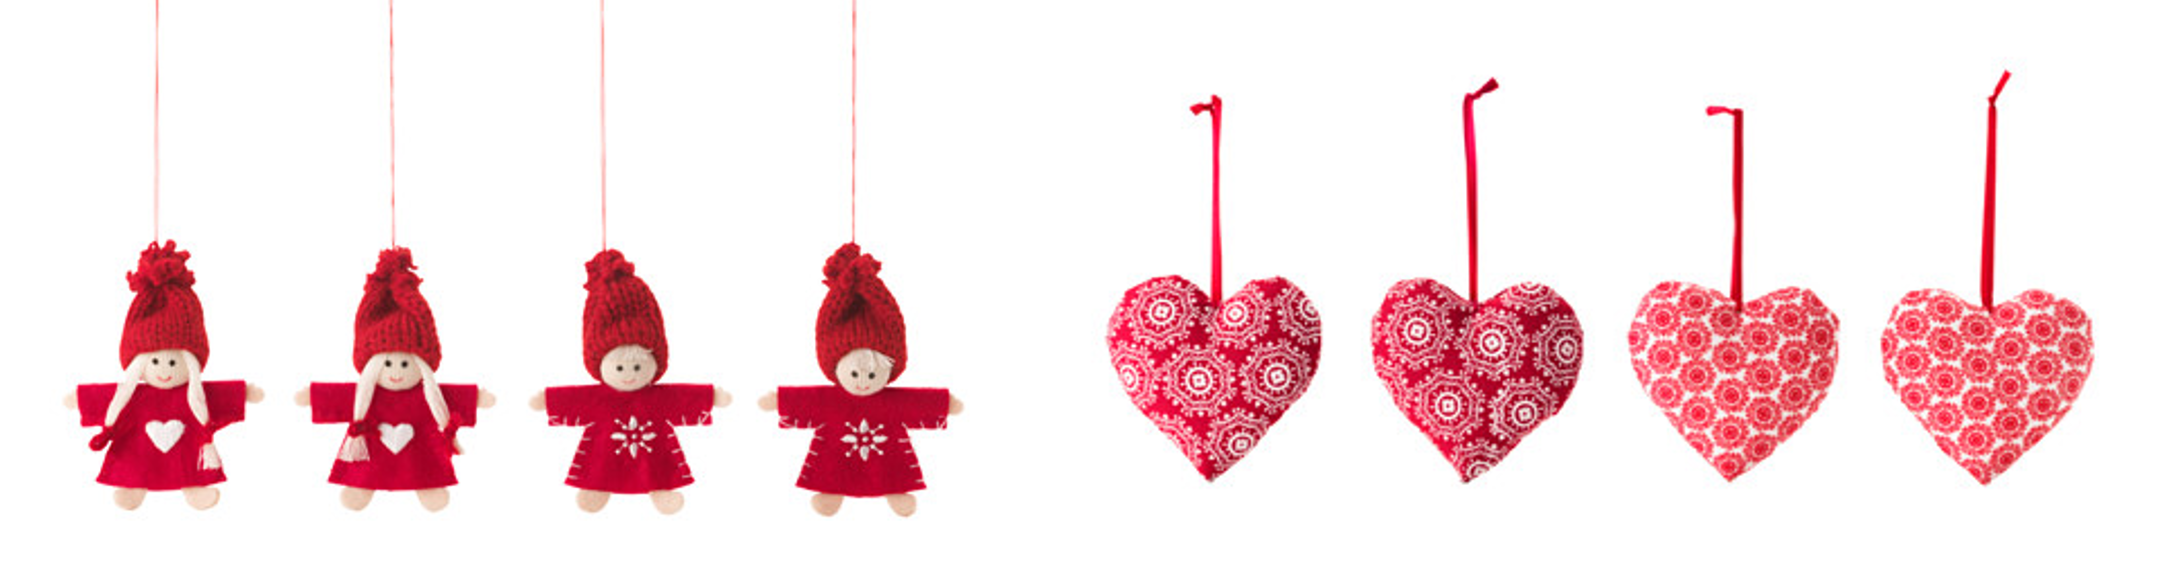 IKEA Christmas Ornaments Transform Grinches into Elves